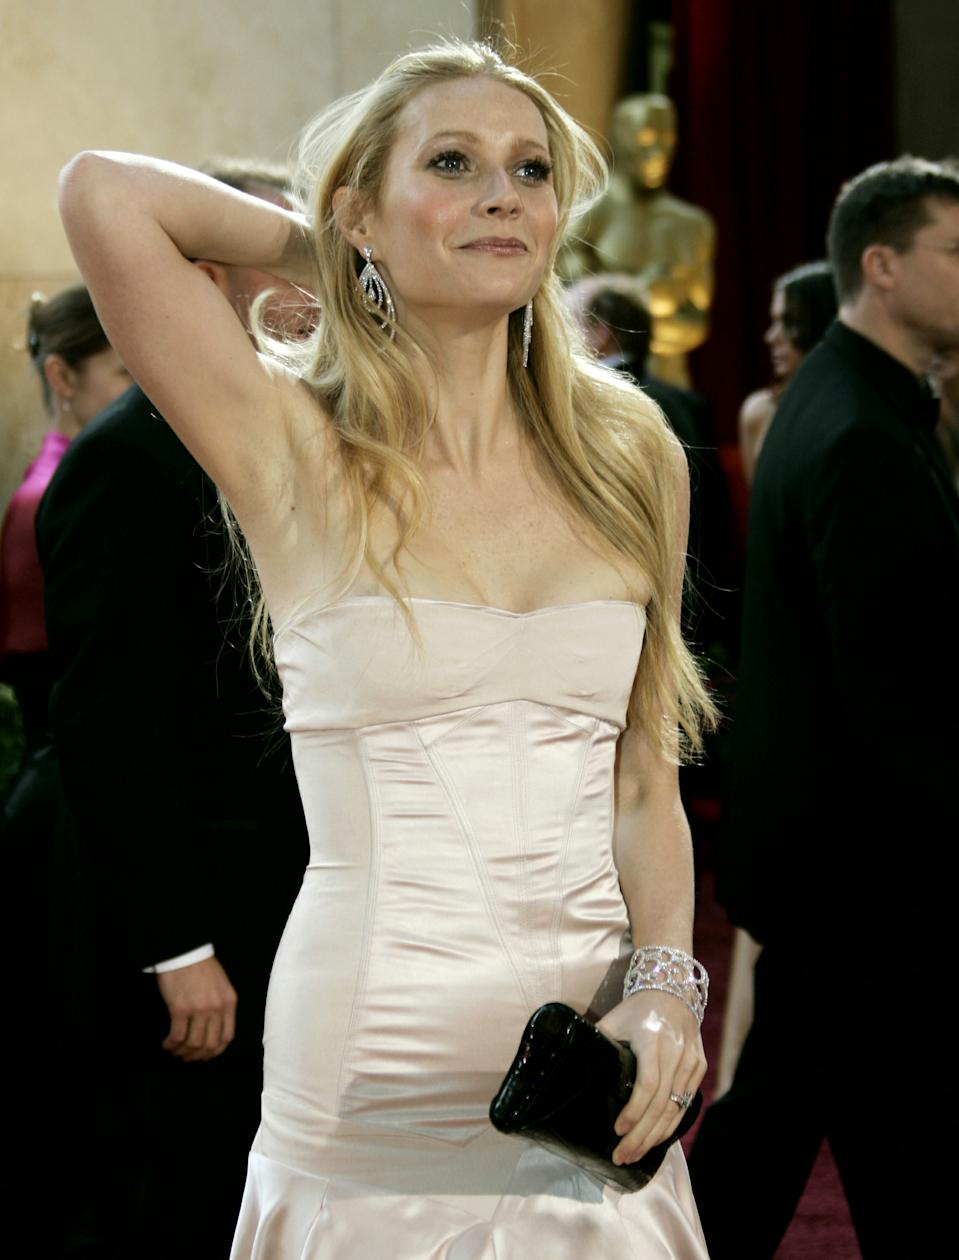 Actress and presenter Gwyneth Paltrow arrives at the 77th annual Academy Awards in Hollywood, February 27, 2005.